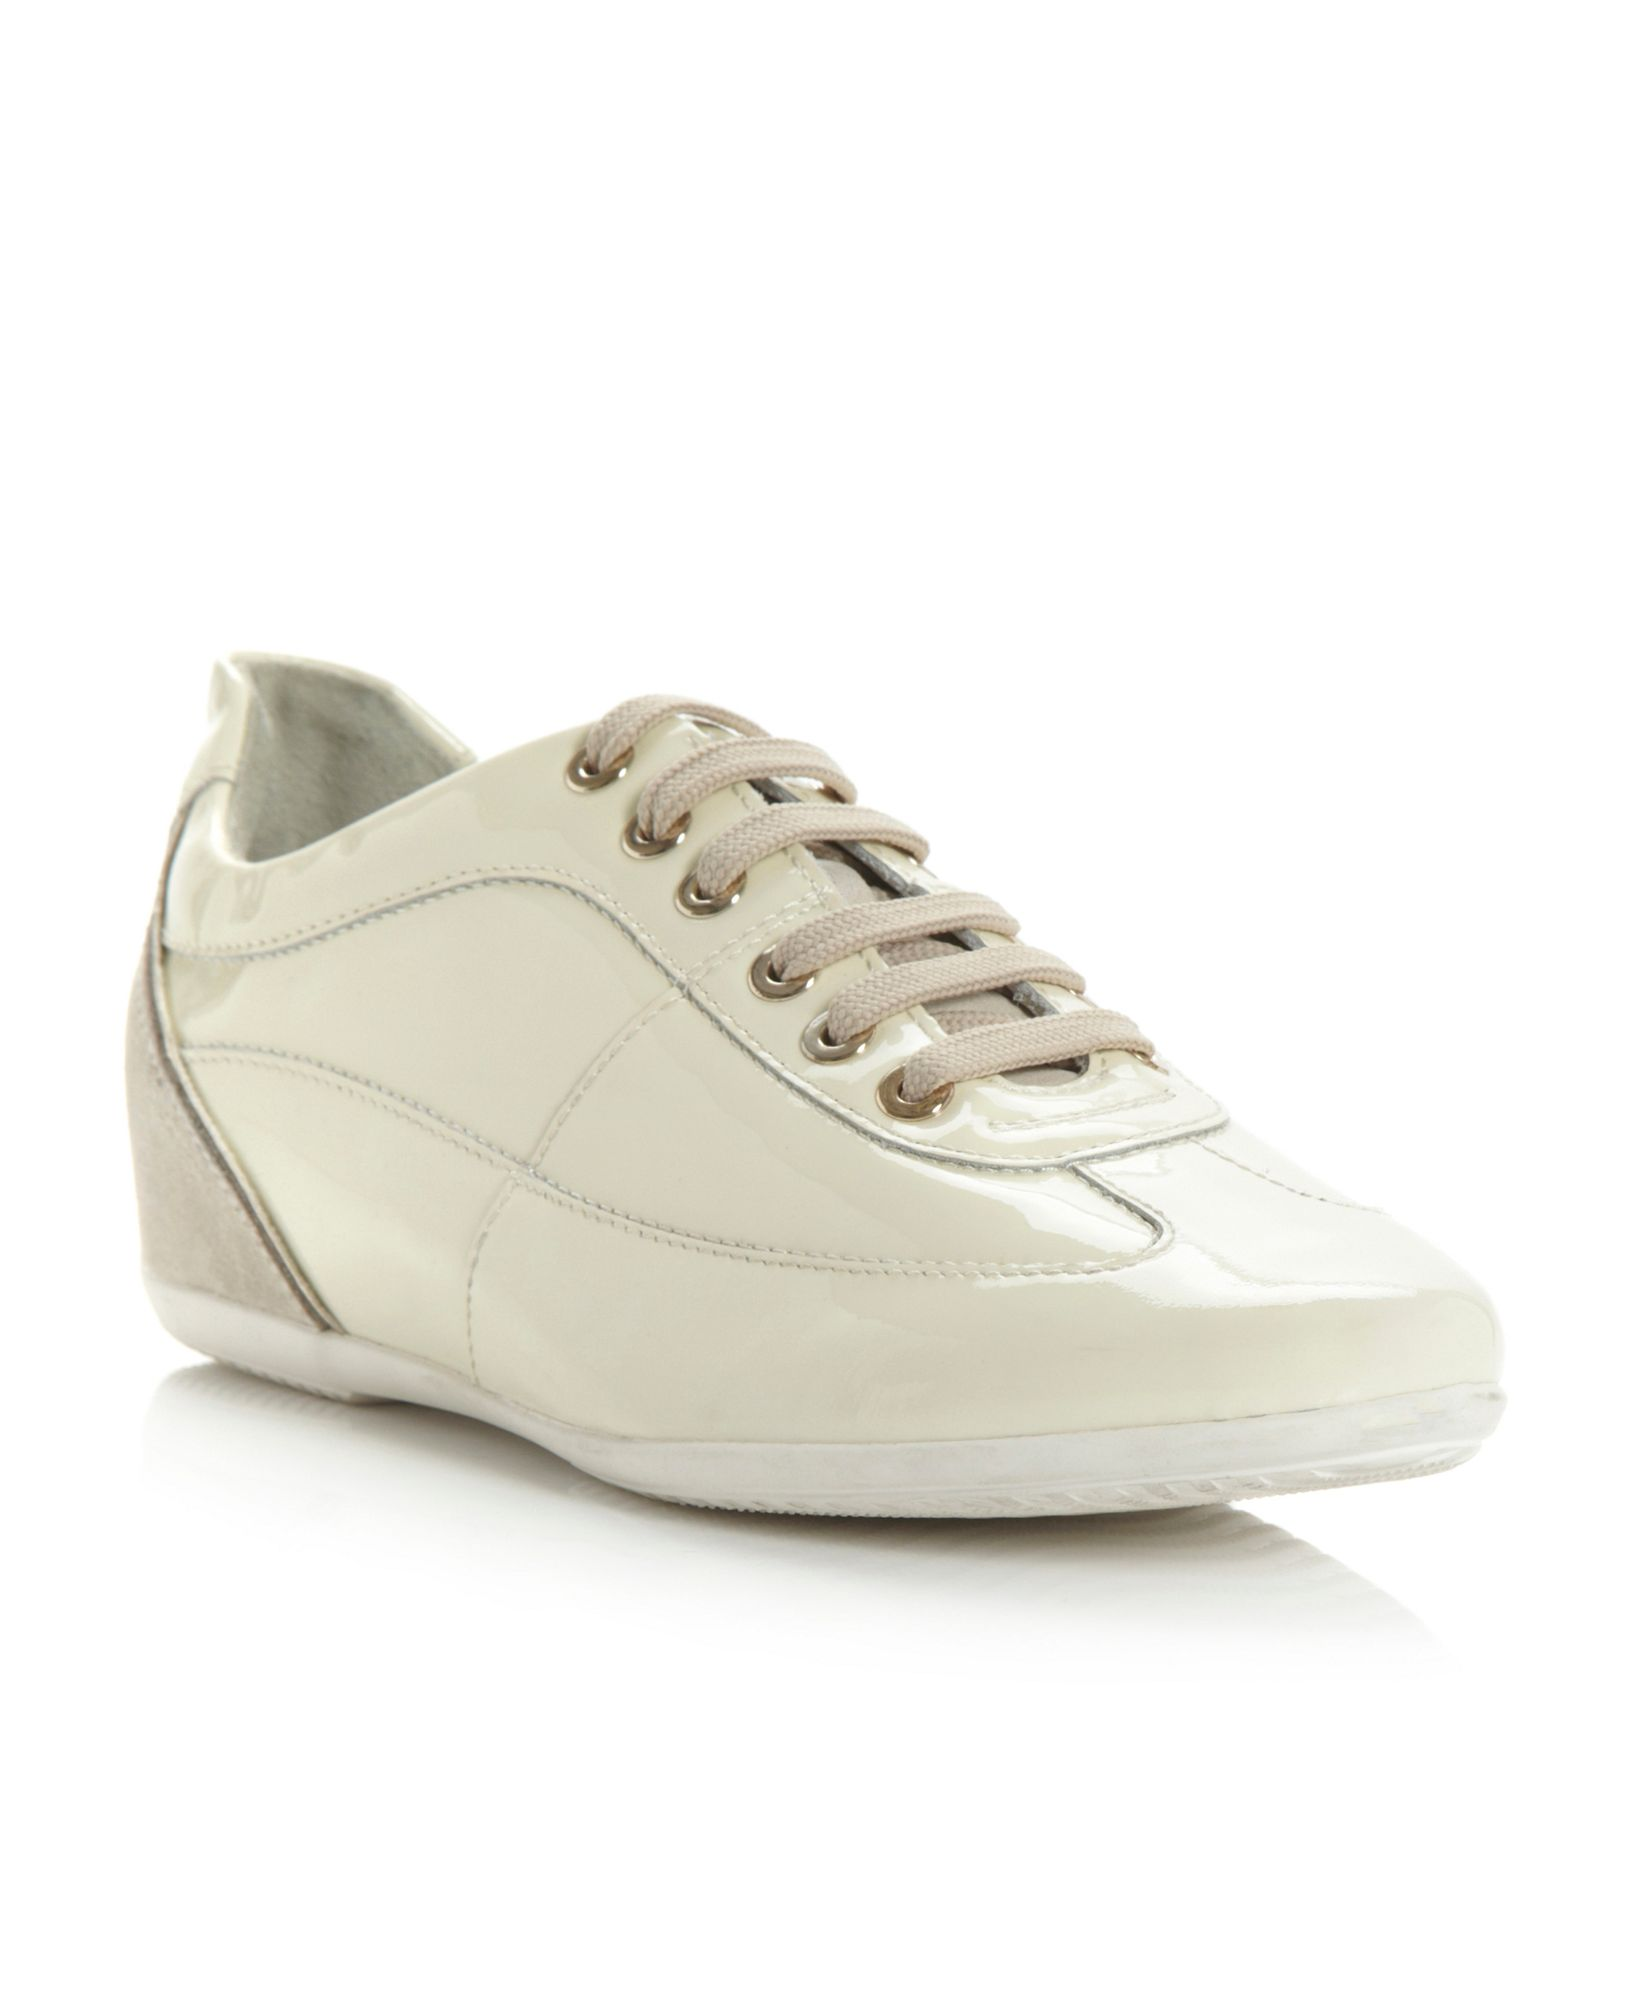 geox vague leather trainer shoes in gray white lyst